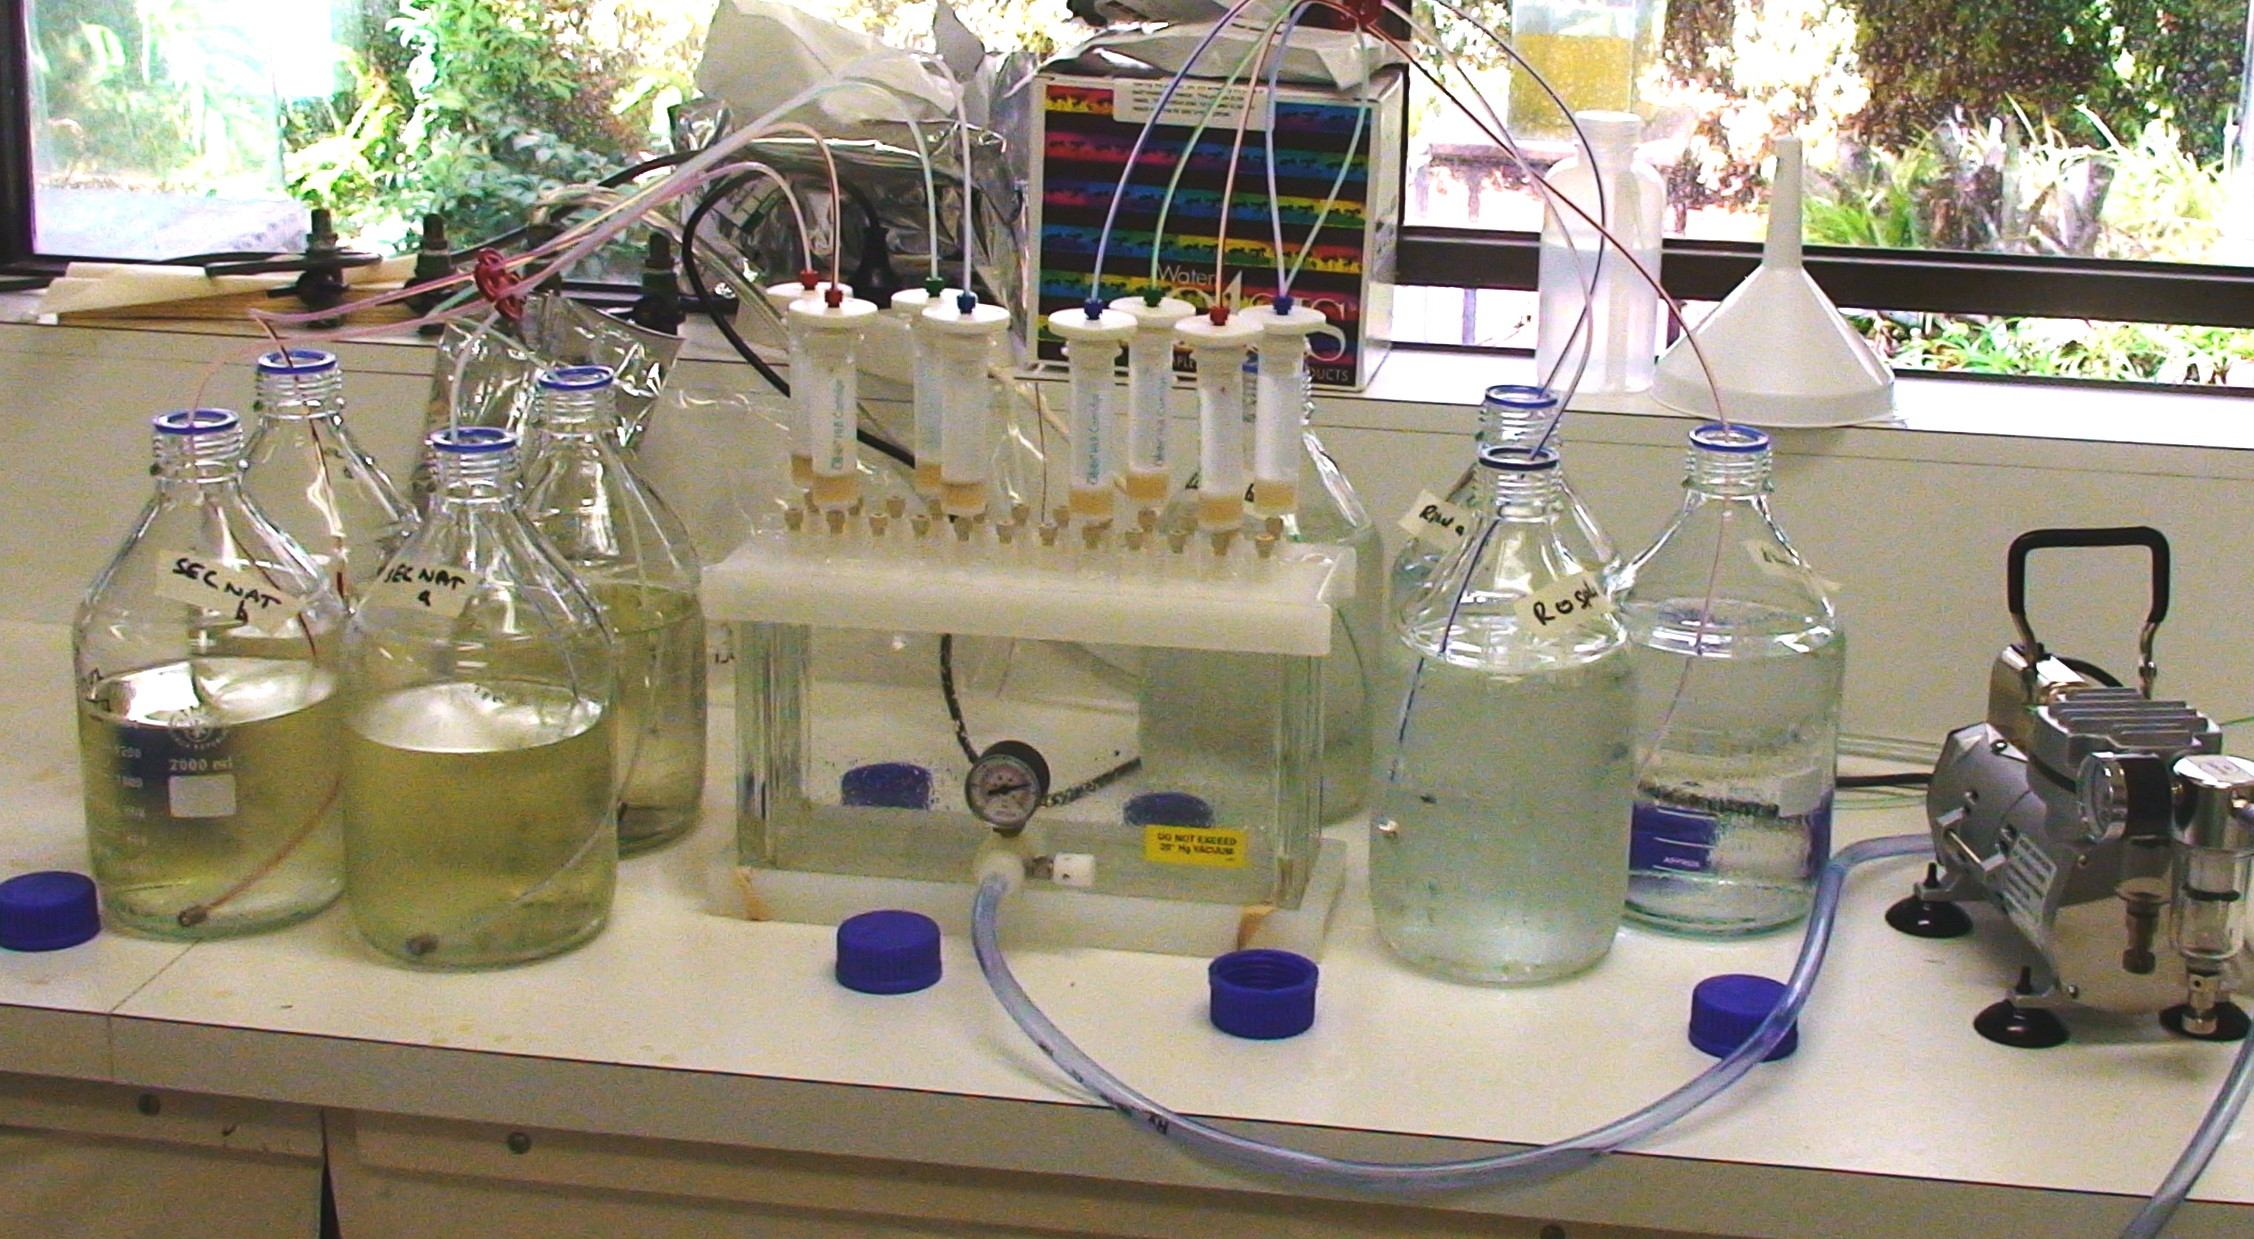 An ecotoxicology laboratory analysis setup